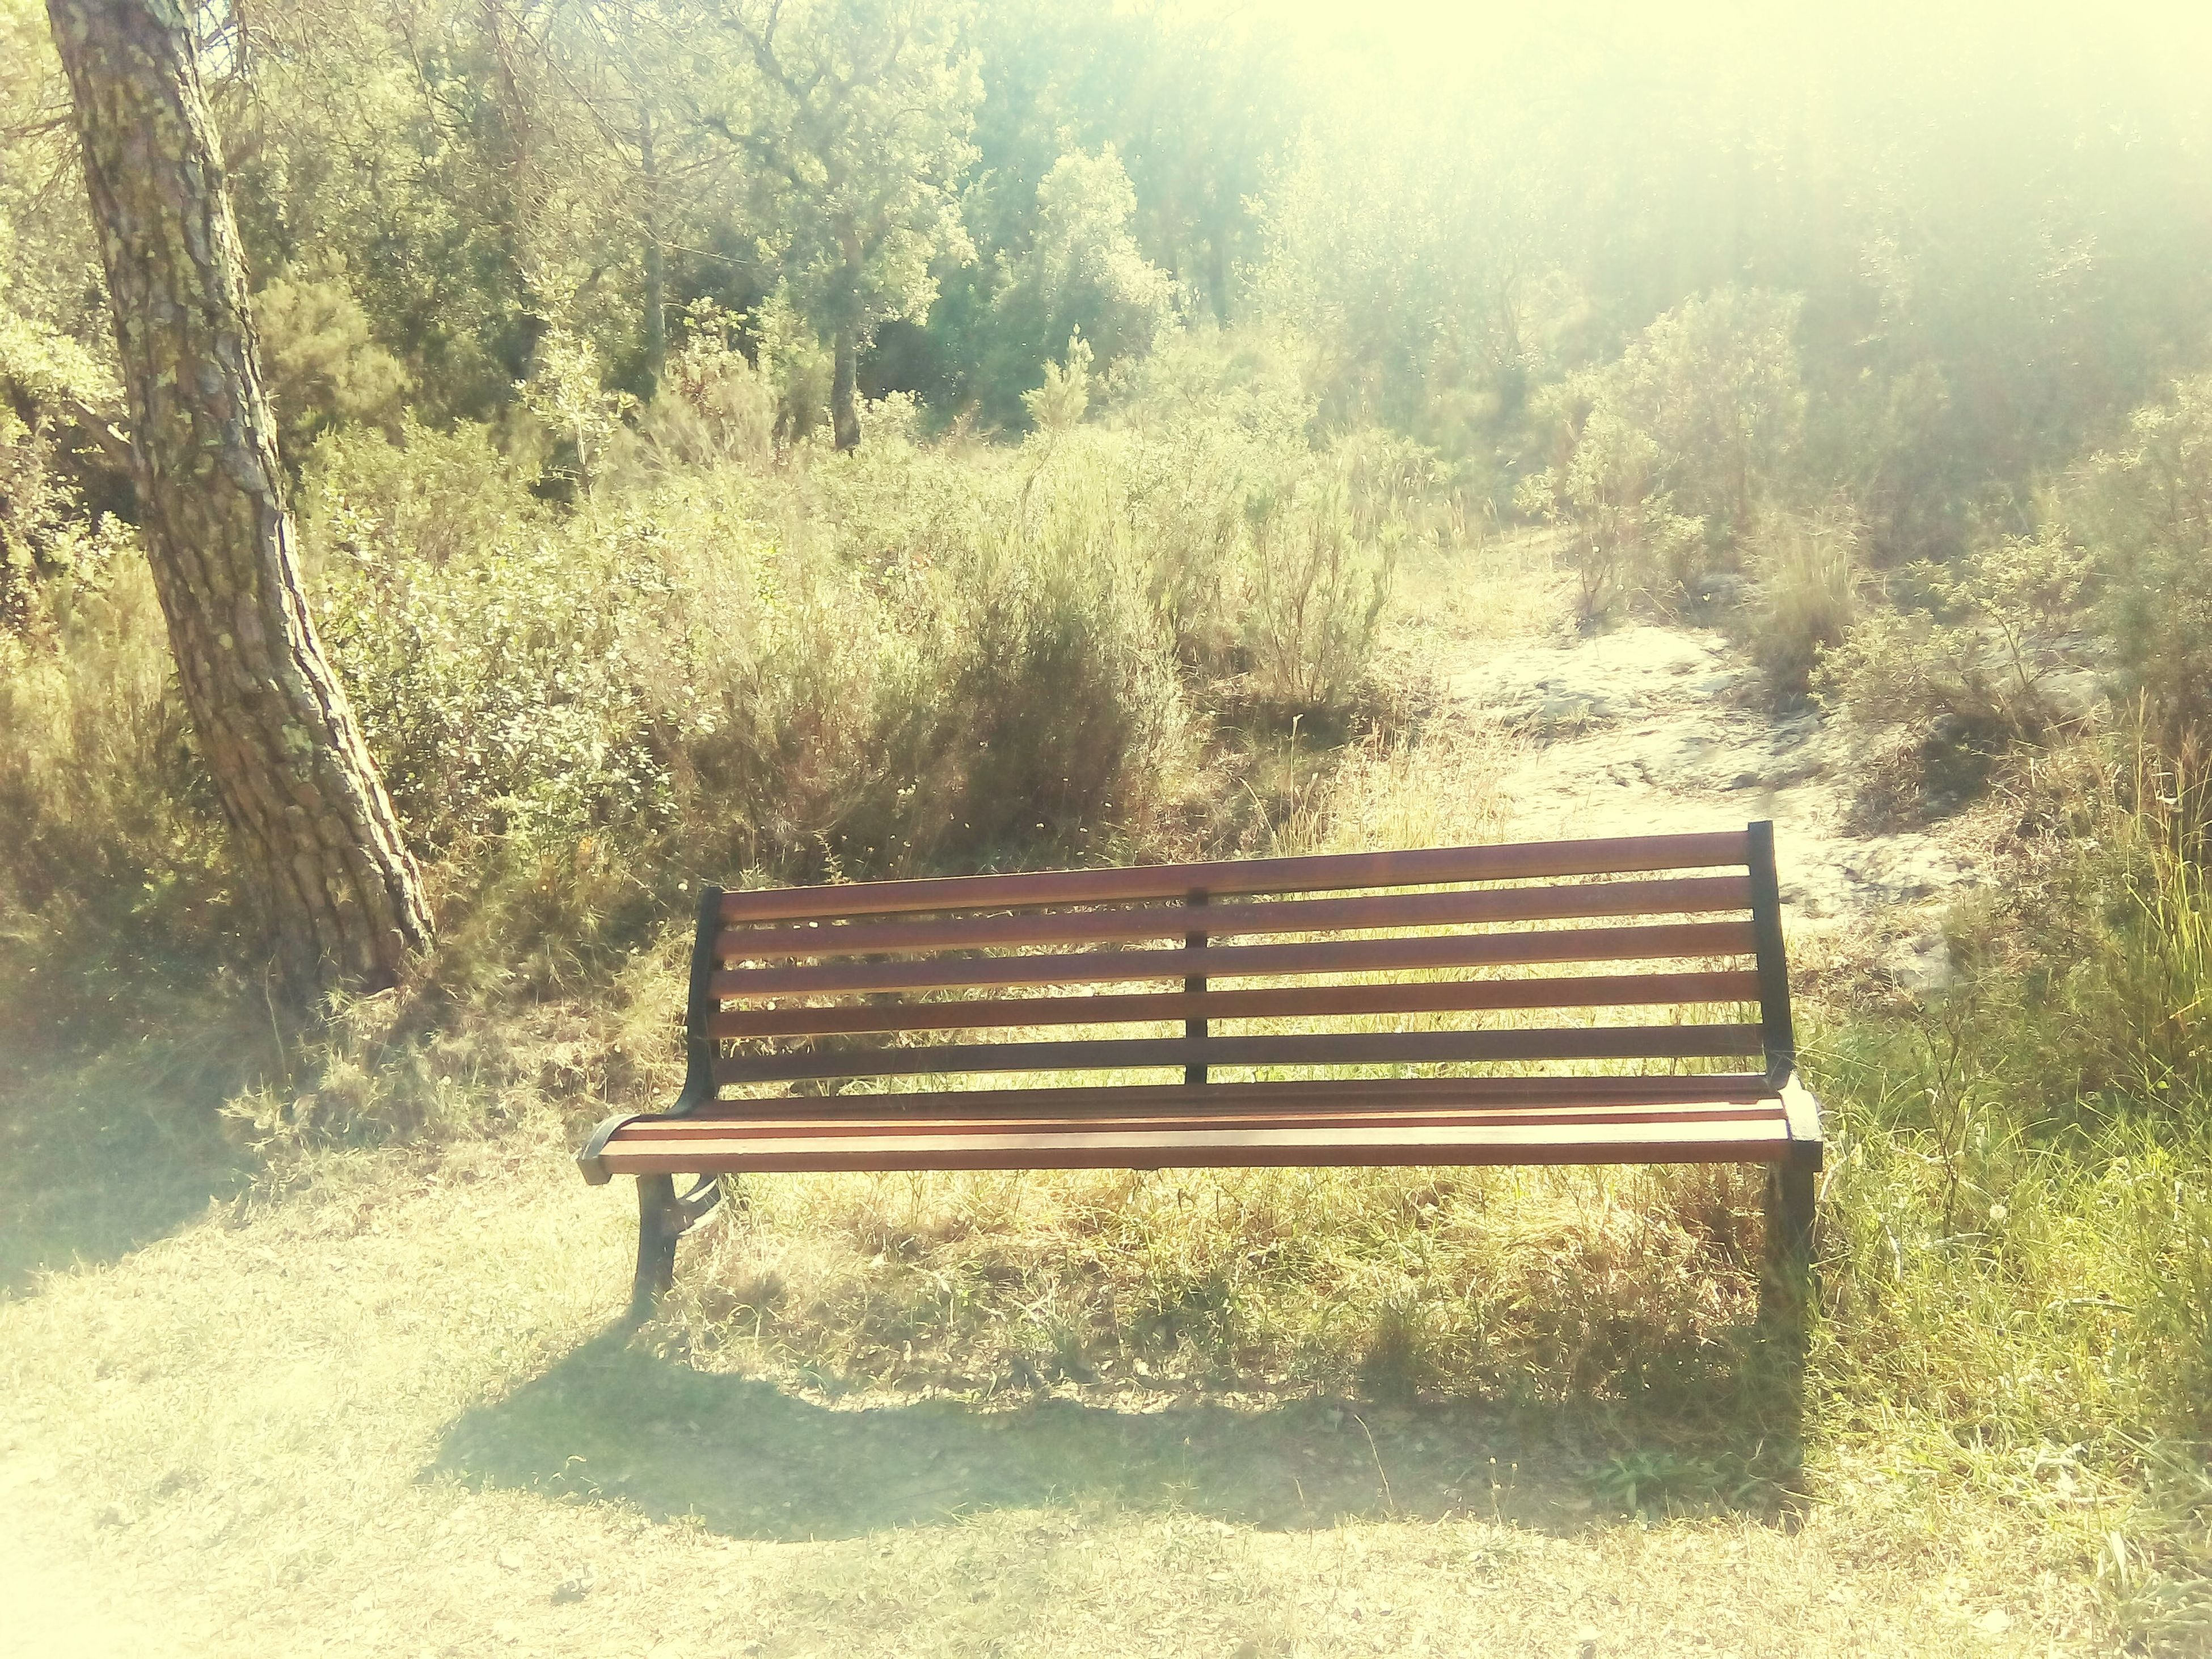 tree, tranquility, bench, growth, nature, tranquil scene, sunlight, plant, absence, beauty in nature, day, empty, scenics, park - man made space, wood - material, outdoors, no people, steps, field, grass